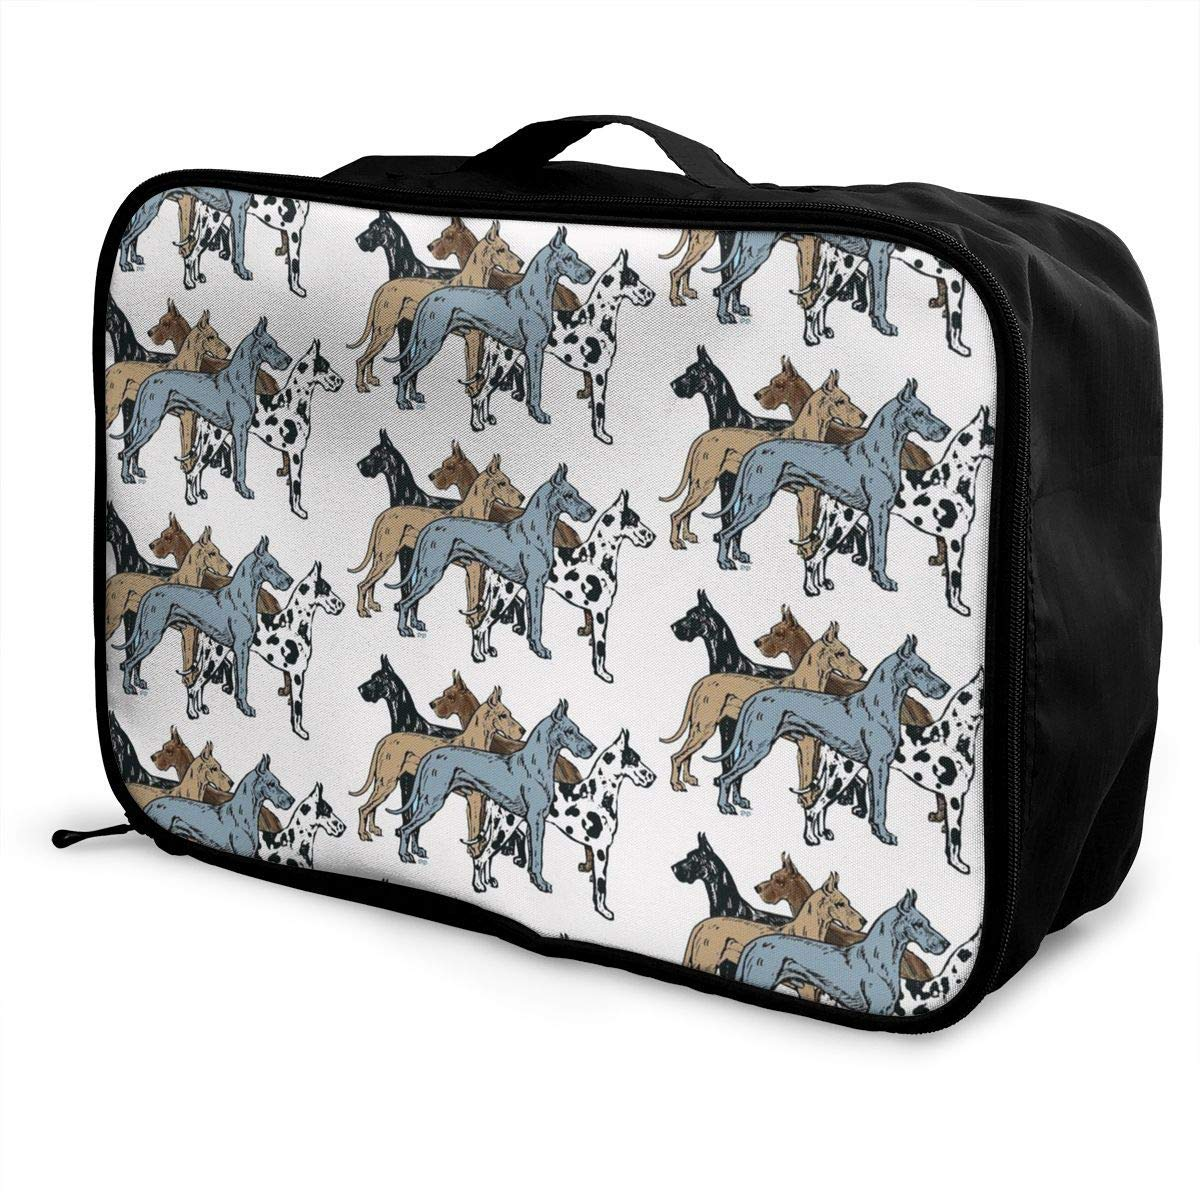 Great Dane Colors Upgraded Travel Lightweight Waterproof Foldable Storage Carry Luggage Duffle Tote Bag JTRVW Luggage Bags for Travel